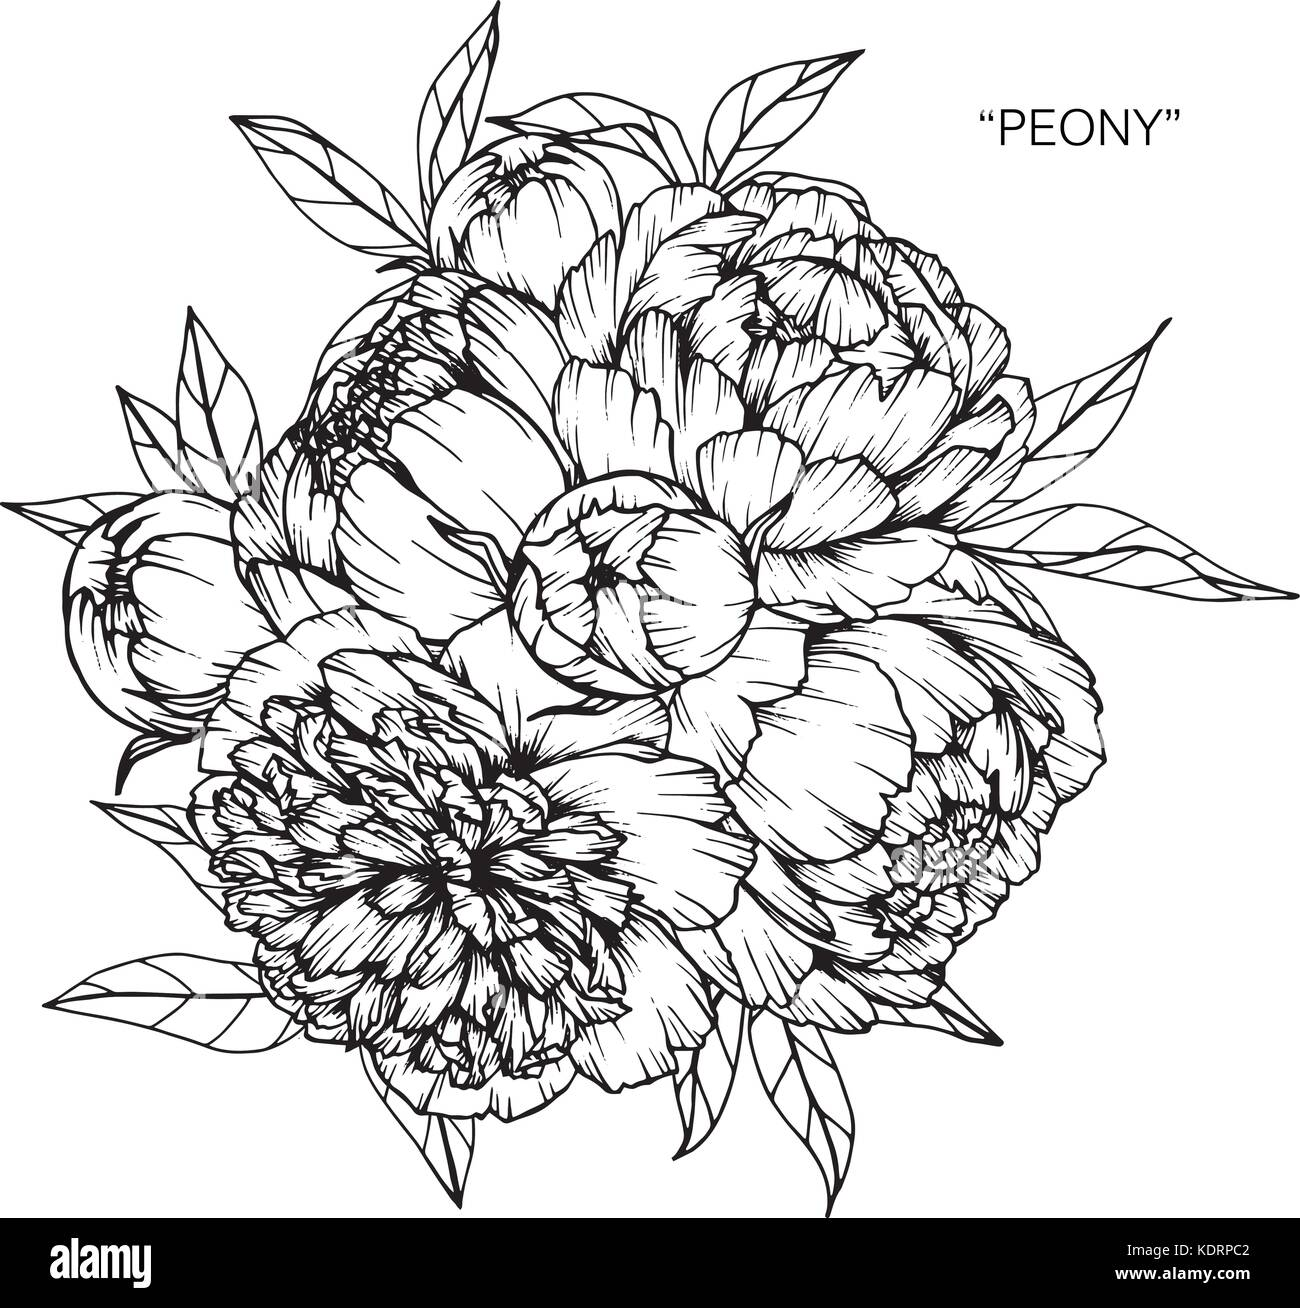 Bouquet of peony flowers drawing stock vector art illustration bouquet of peony flowers drawing izmirmasajfo